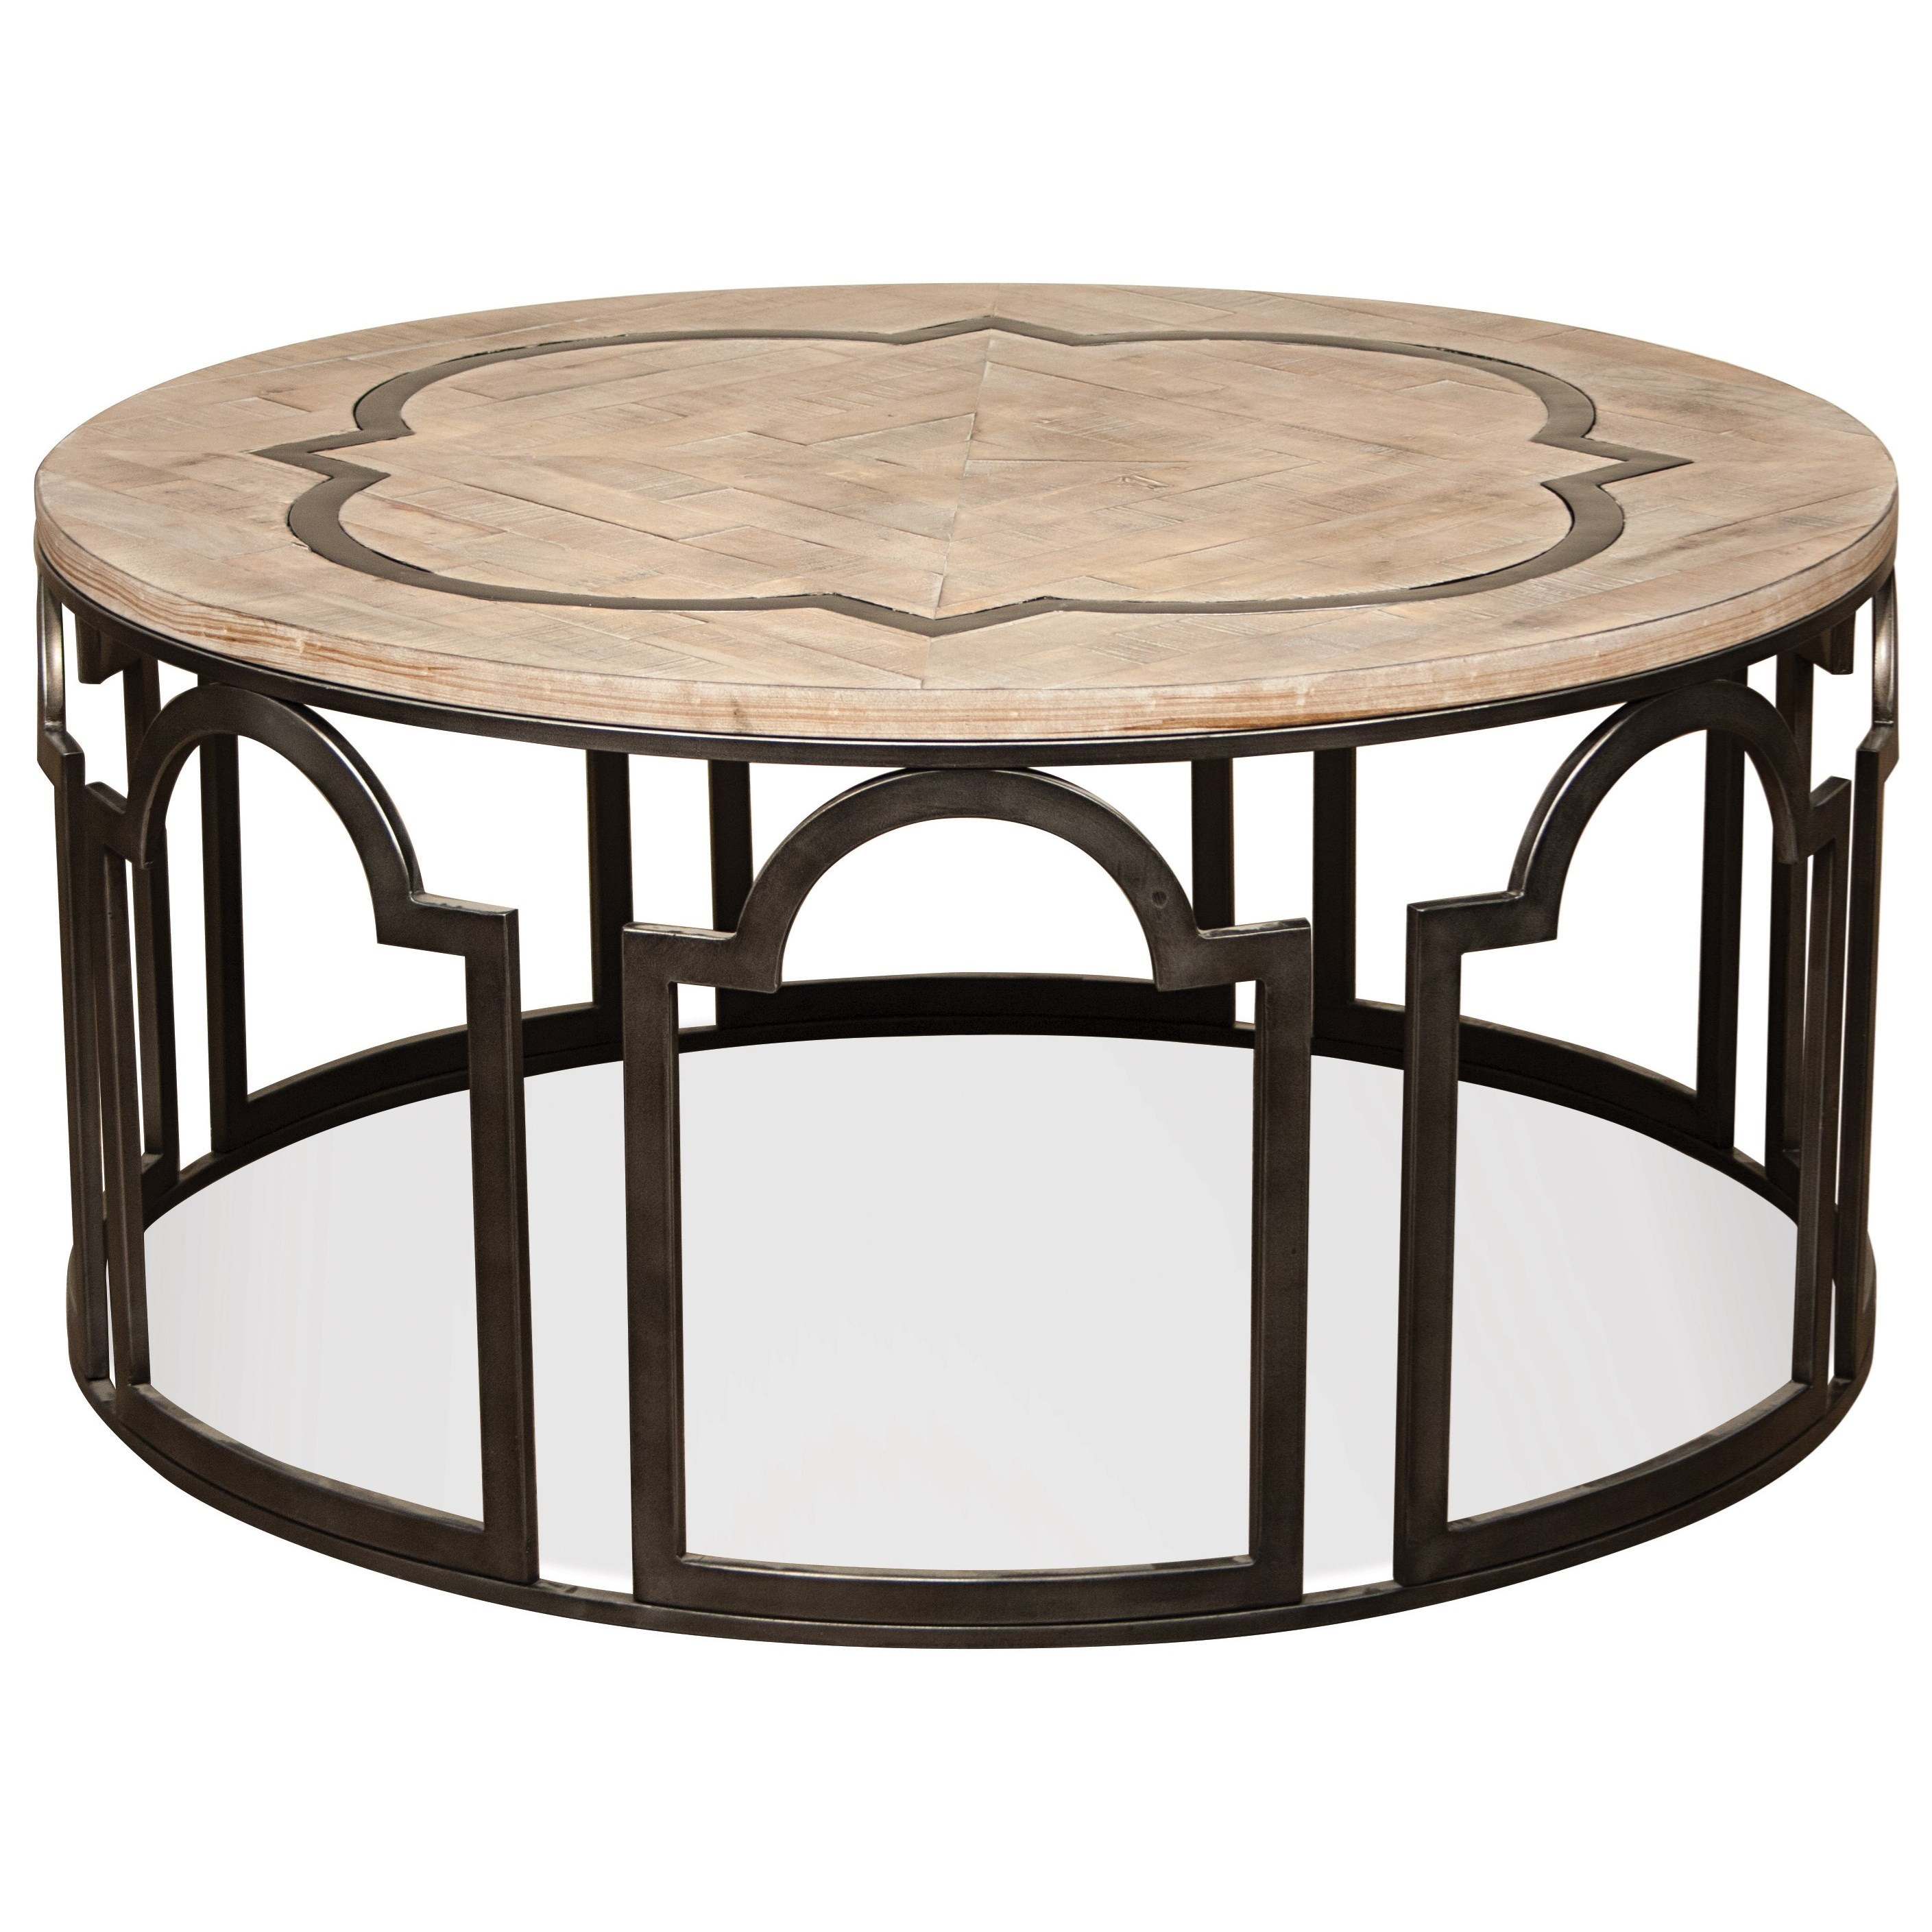 Riverside Furniture Estelle Round Cocktail Table Item Number 20102